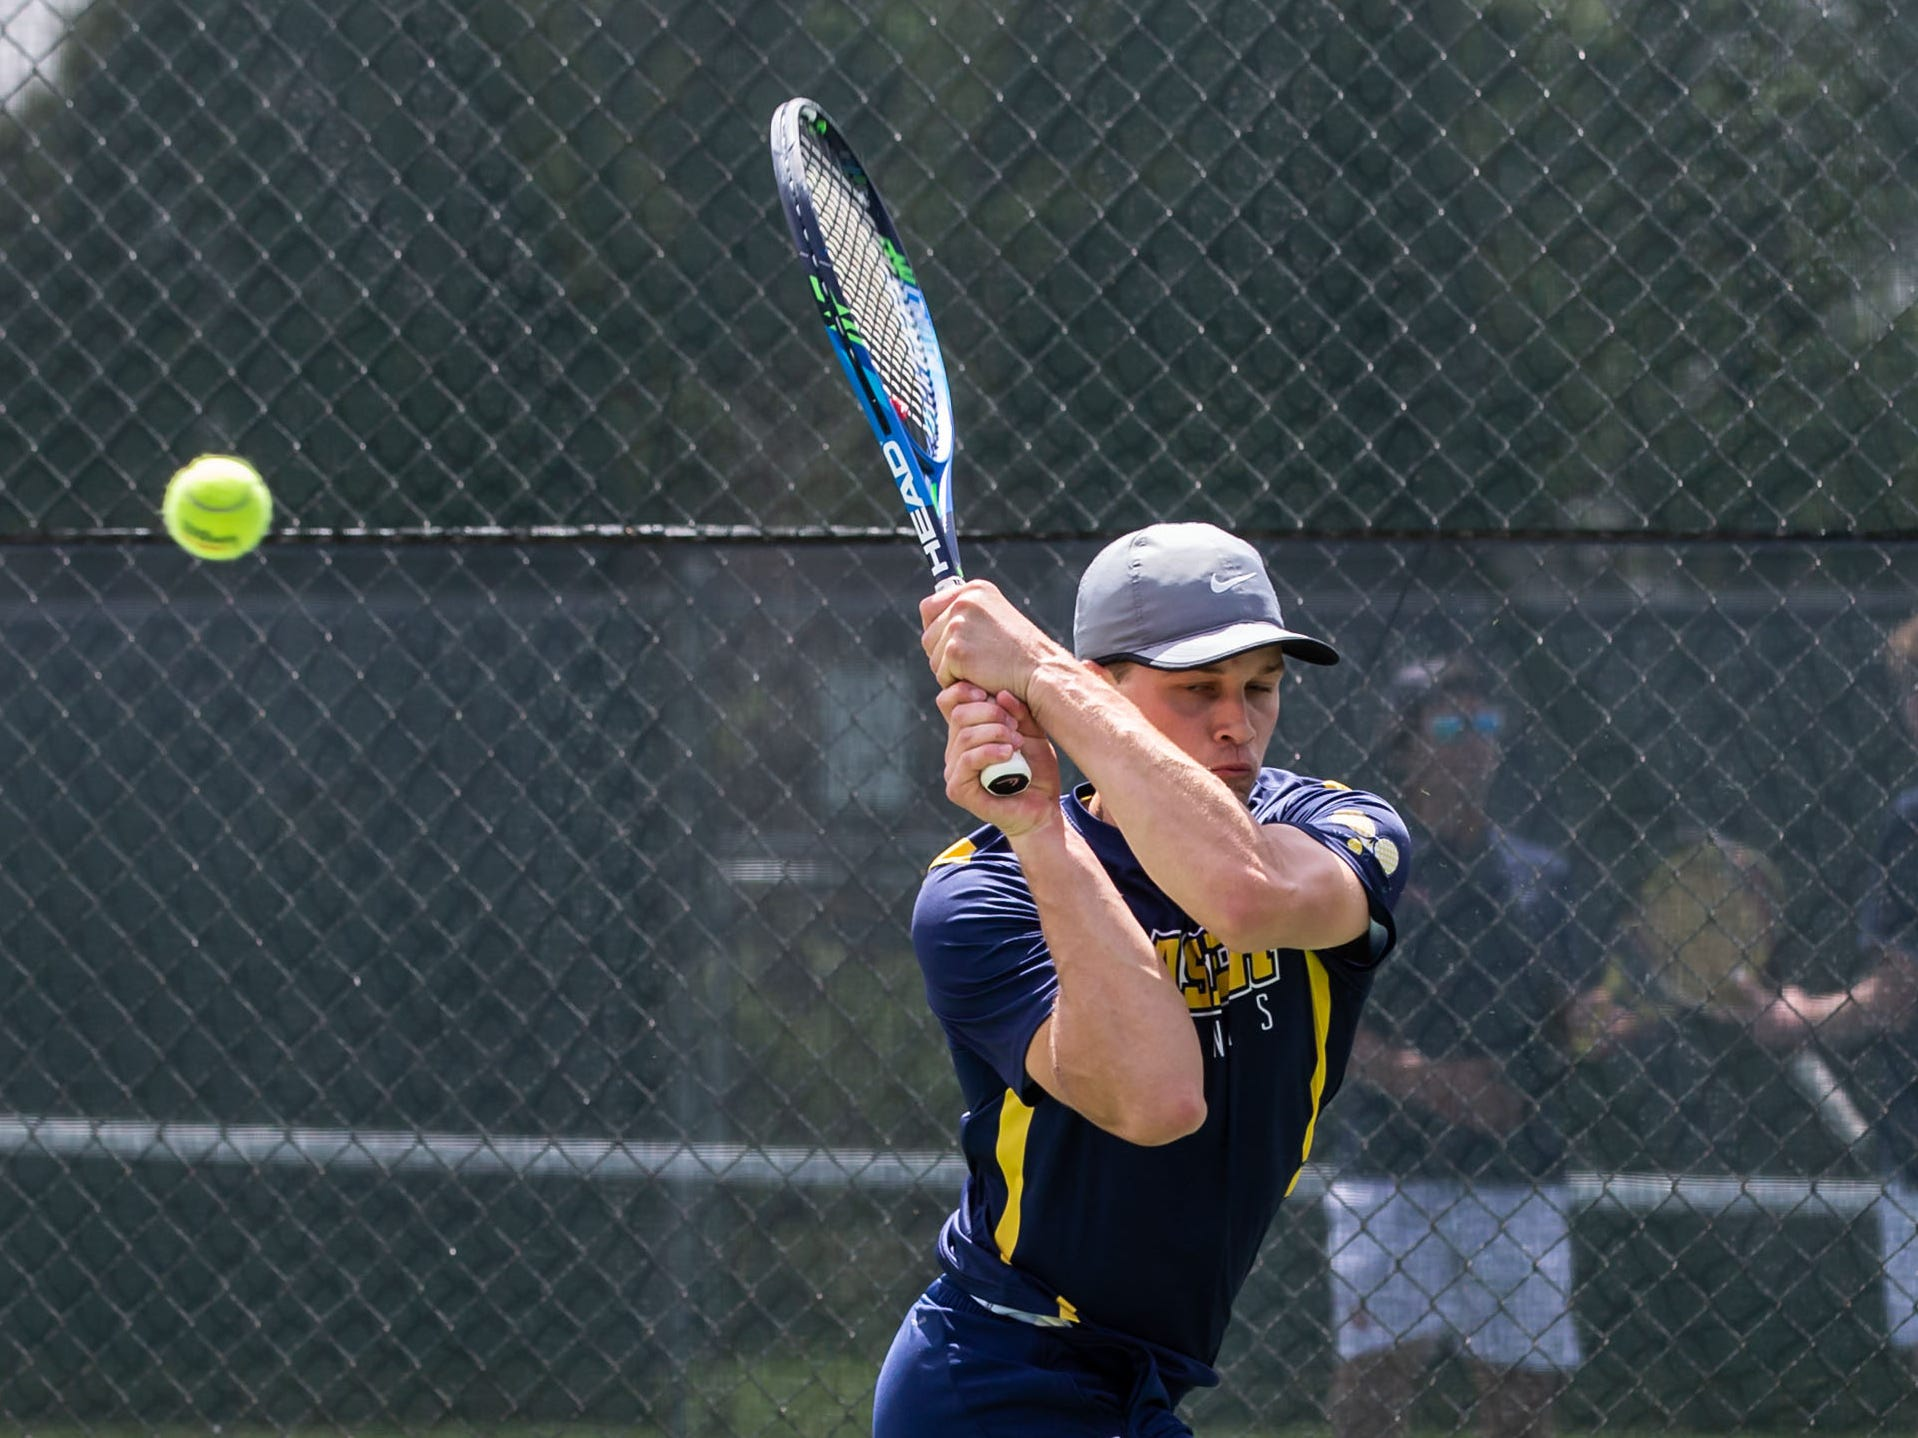 Kettle Moraine No. 2 singles player Connor Linzer runs down a corner shot during the WIAA Boys Tennis Sectional at Waukesha South on Wednesday, May 22, 2019.